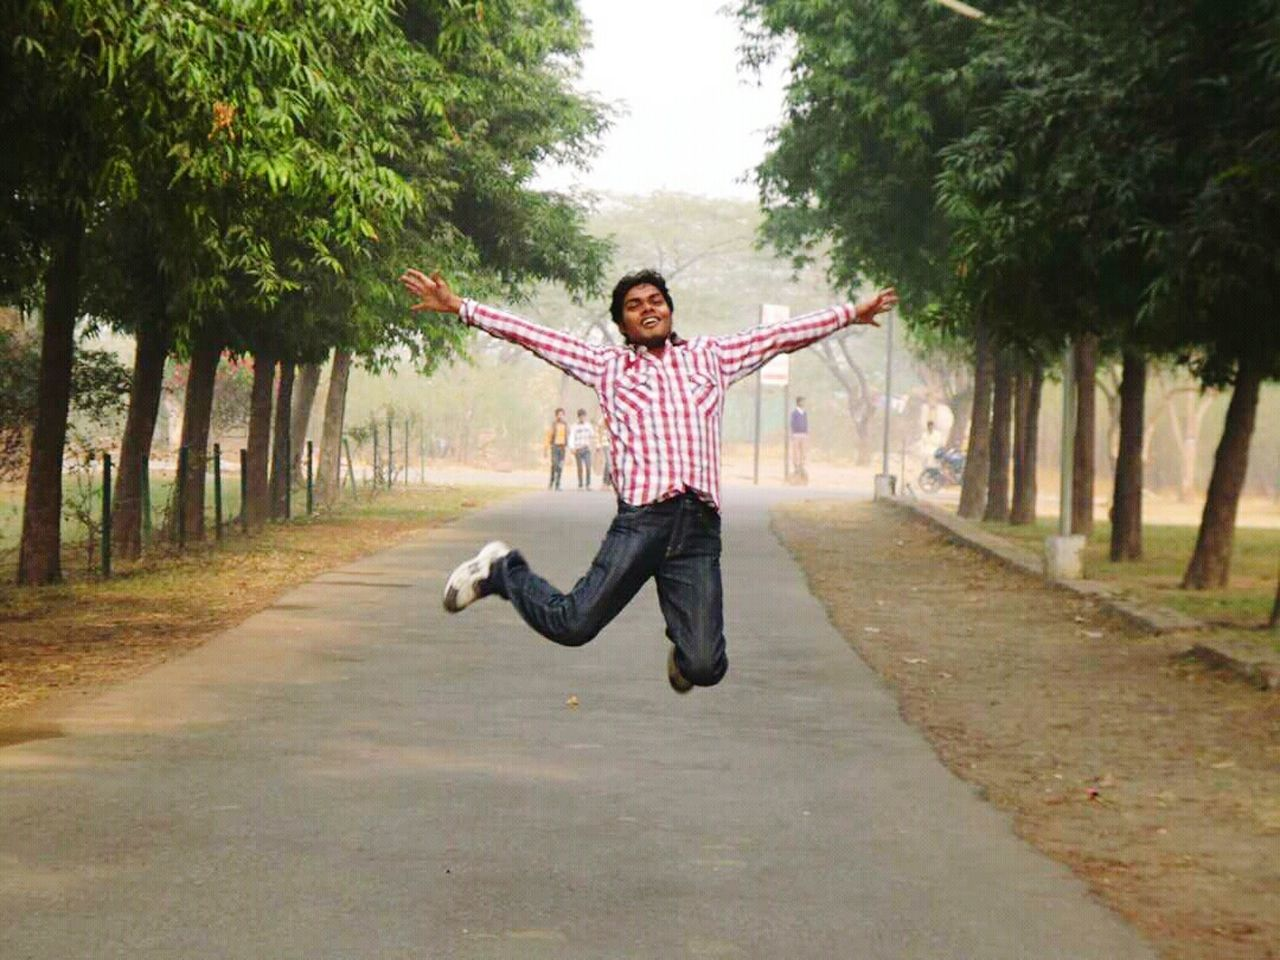 human arm, motion, one person, arms raised, tree, outdoors, casual clothing, day, full length, mid-air, human body part, jumping, arms outstretched, front view, young adult, fun, one man only, only men, men, happiness, one young man only, adult, smiling, people, adults only, nature